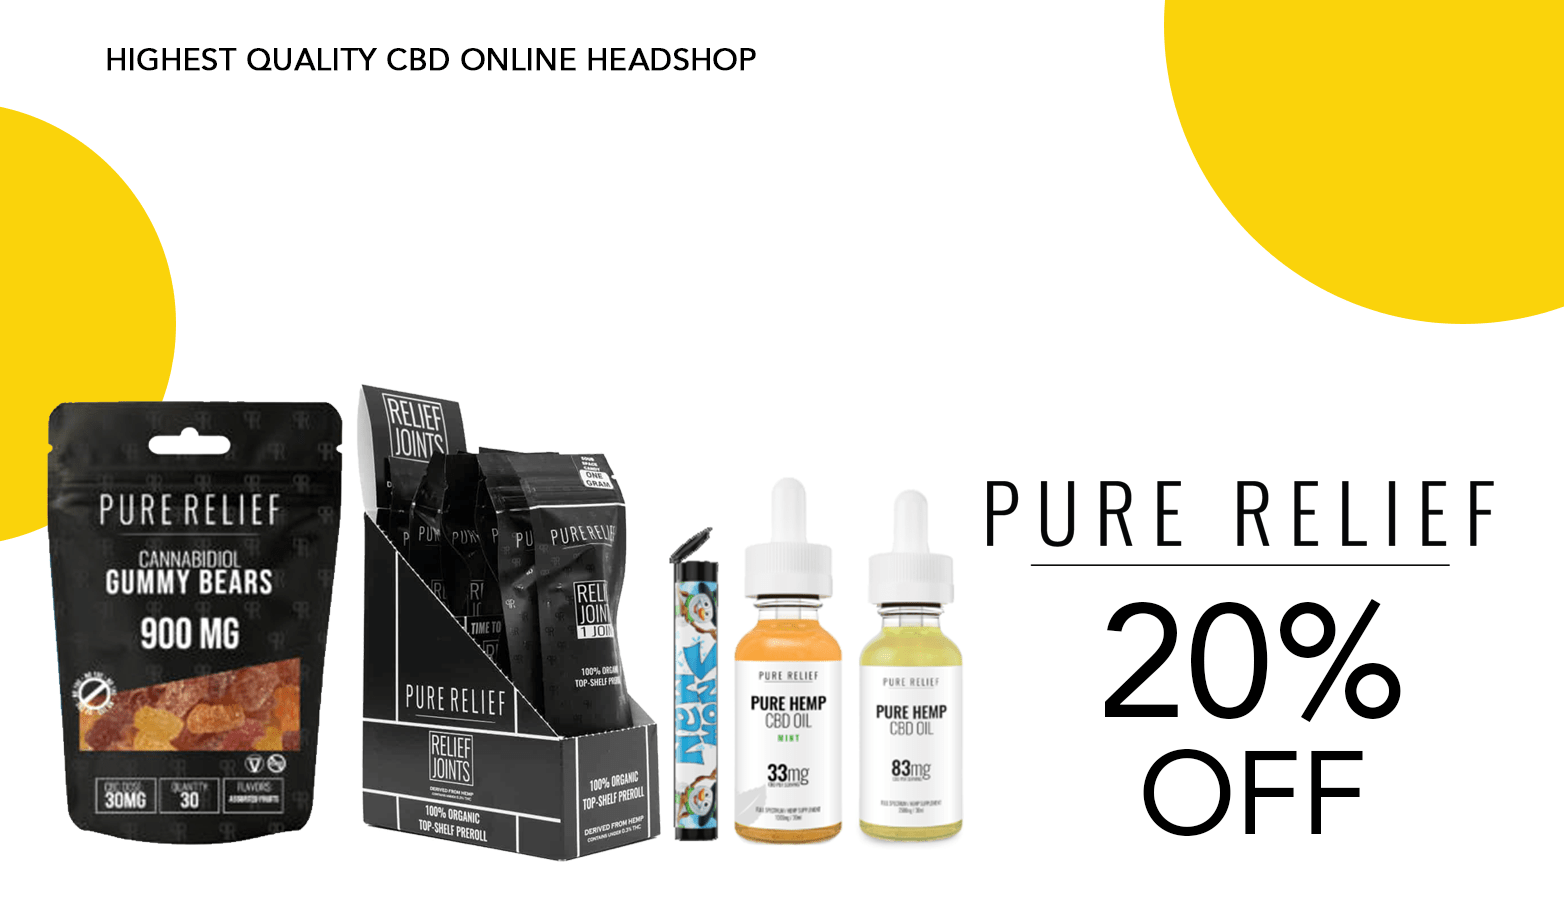 Pure Relief CBD Coupon Code 20 Percent Offer Website